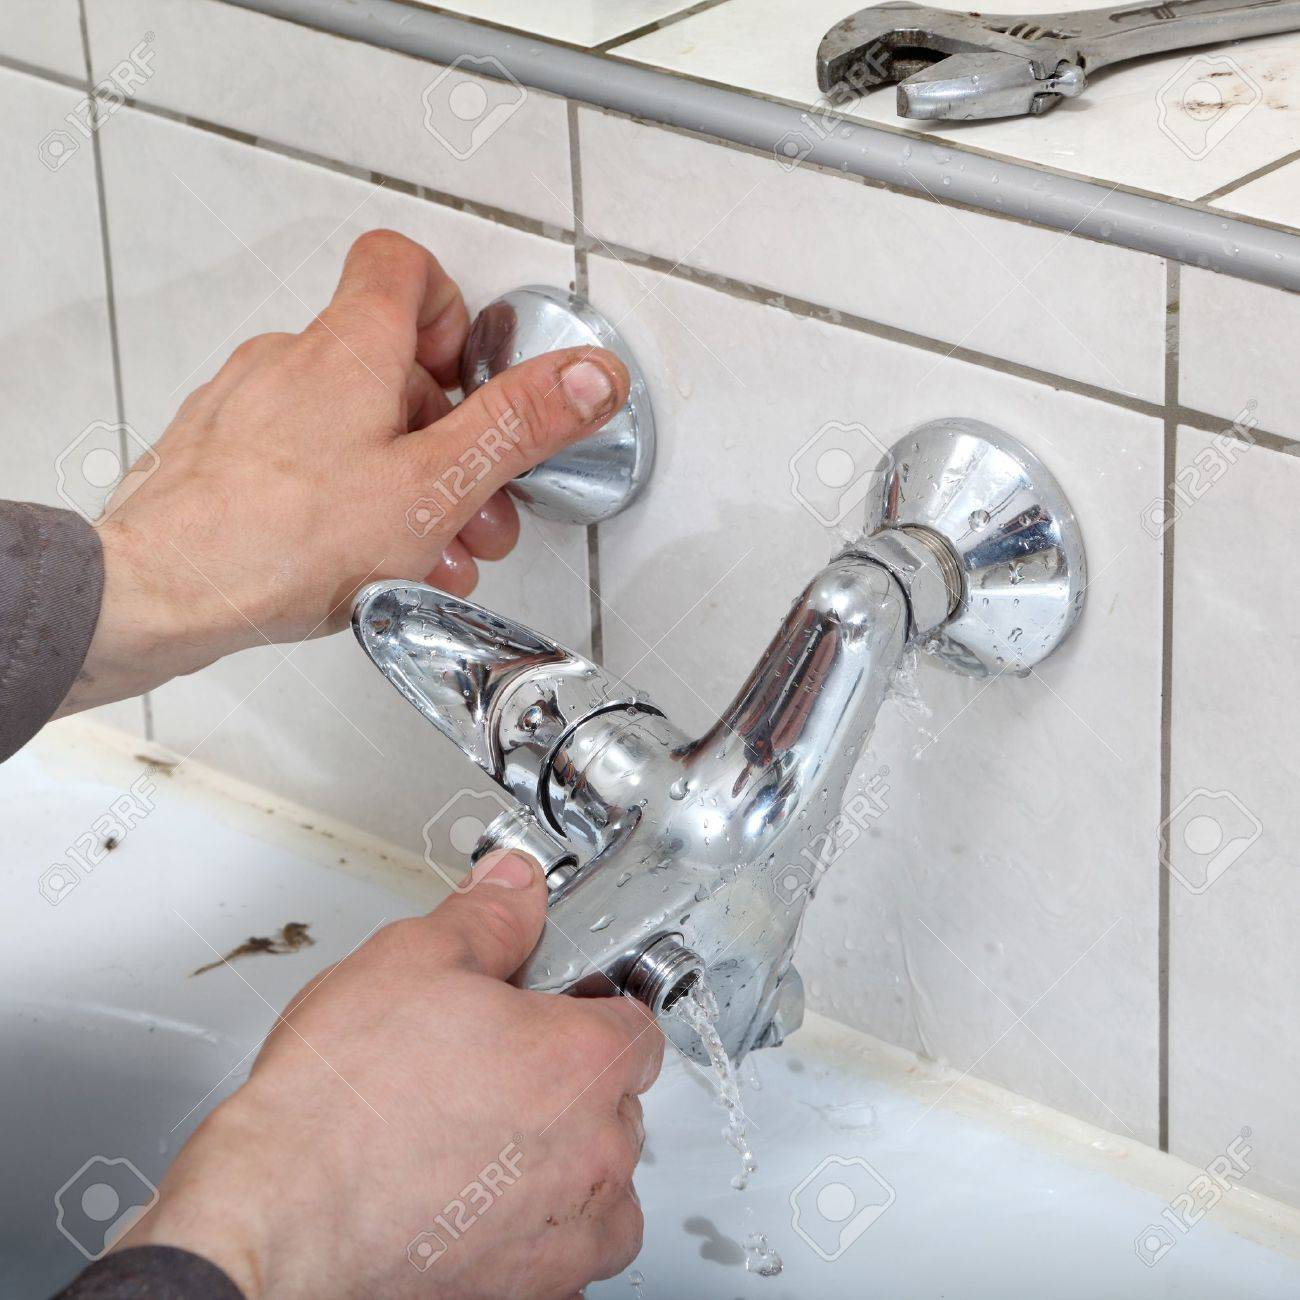 Plumber Hands Fixing Water Tap With Leaking Water Stock Photo ...